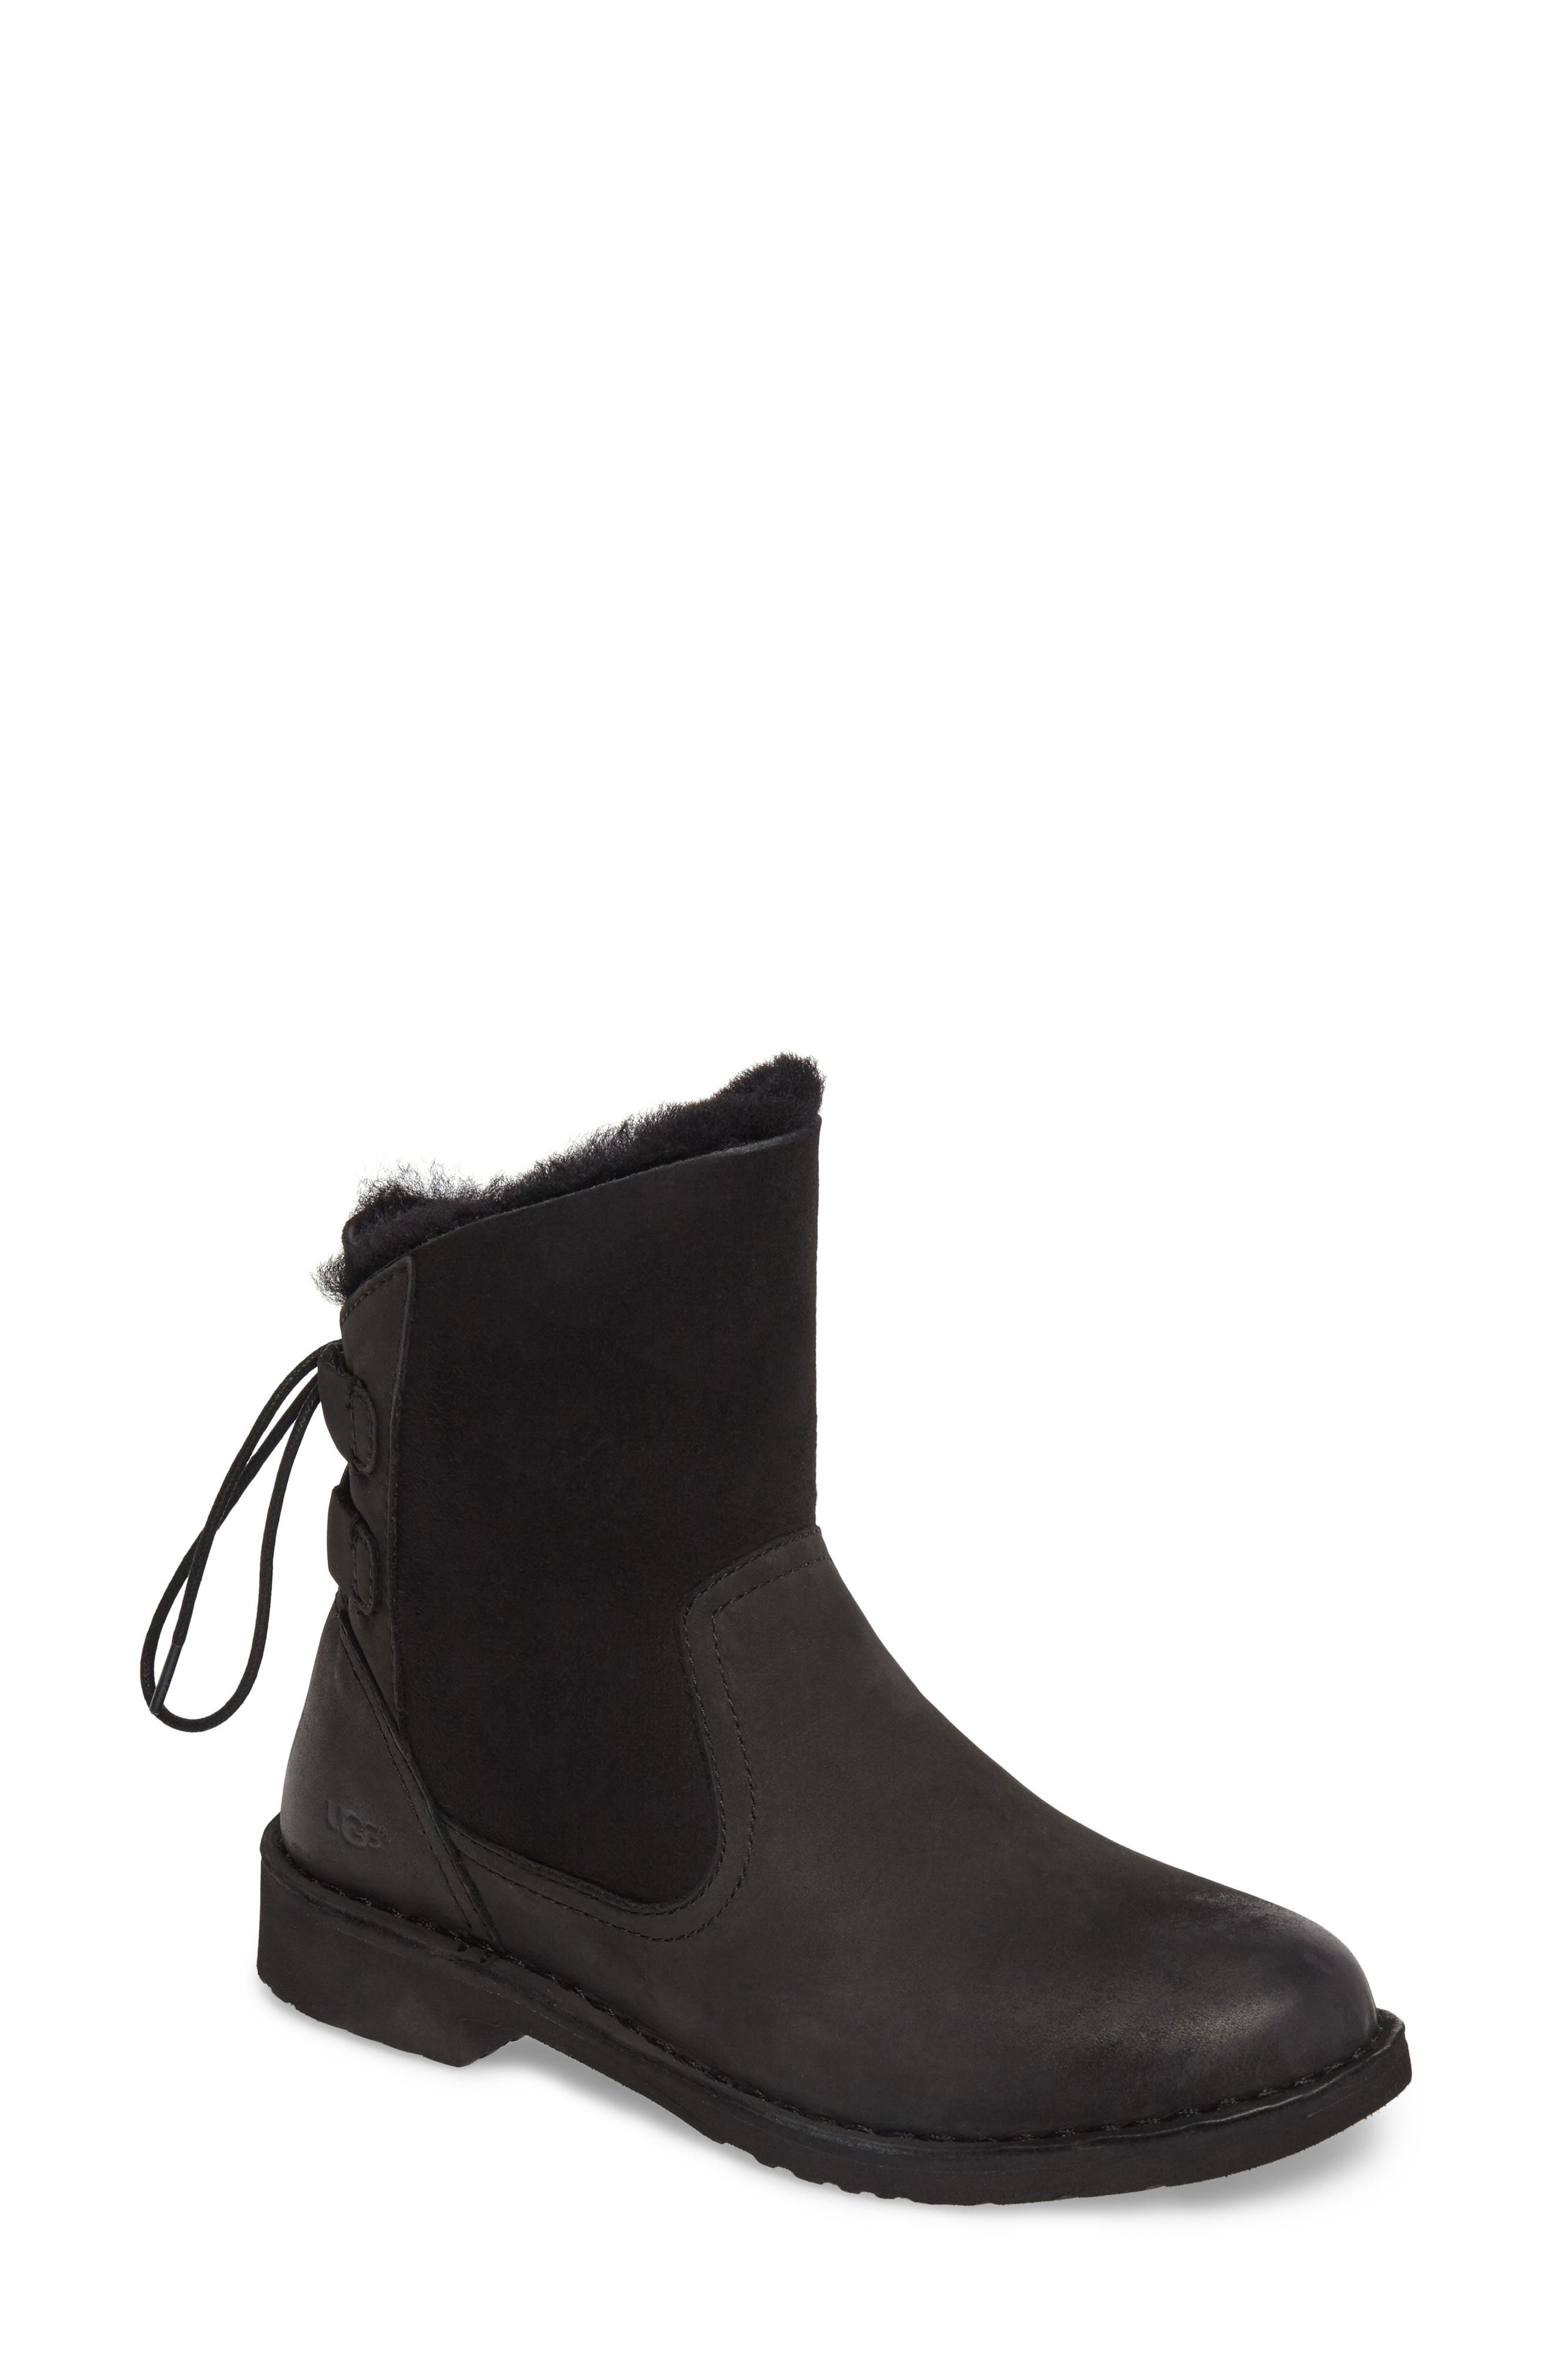 Naiyah Lace-Back Genuine Shearling Boot,                             Main thumbnail 1, color,                             Black/ Black Nubuck Leather